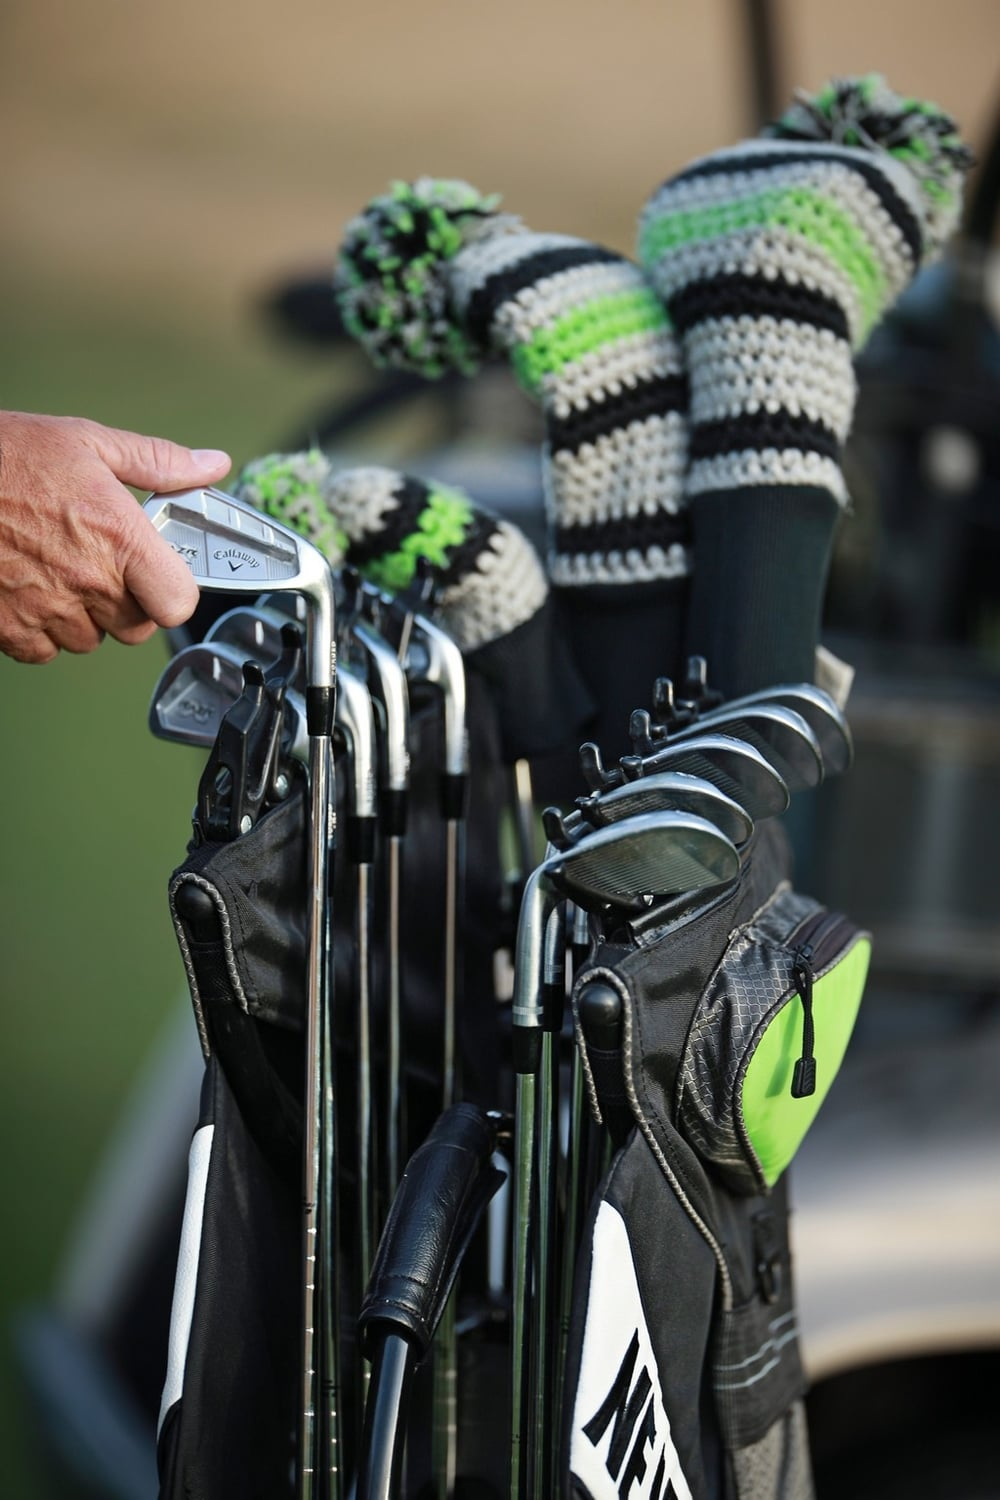 Irons glide easily in and out